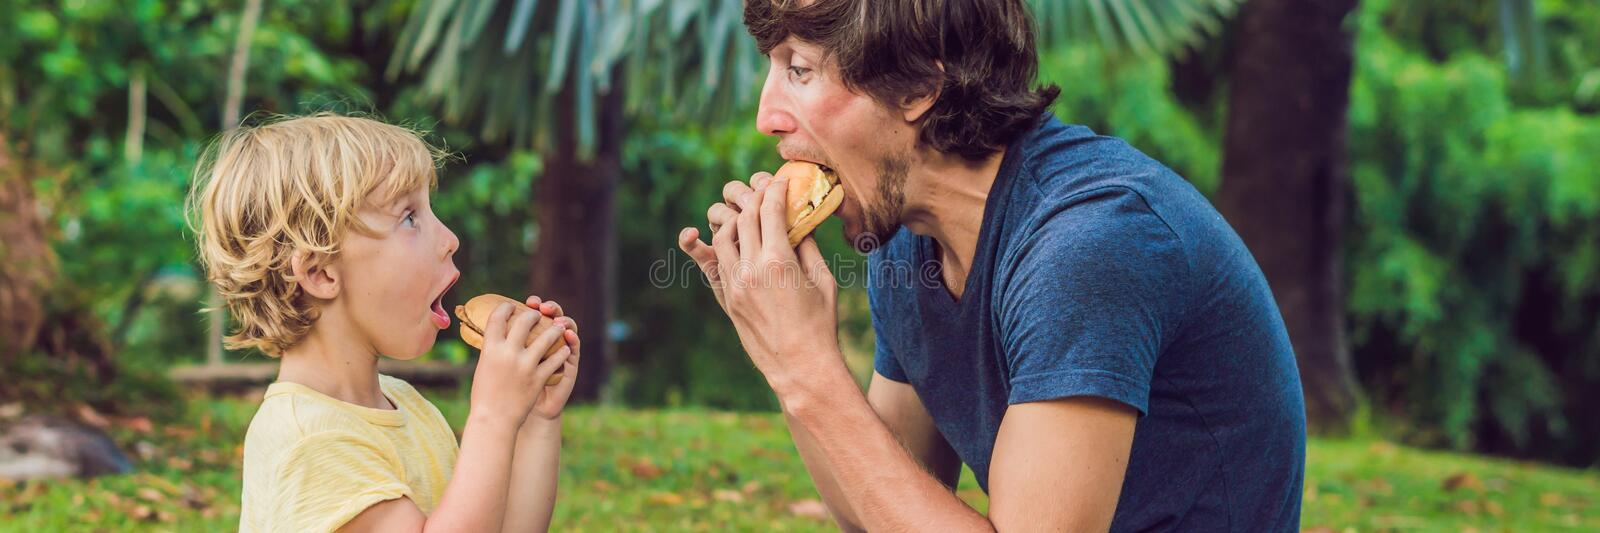 Portrait of a young father and his son enjoying a hamburger in a park and smiling BANNER long format. Portrait of a young father and his son enjoying a hamburger royalty free stock photos